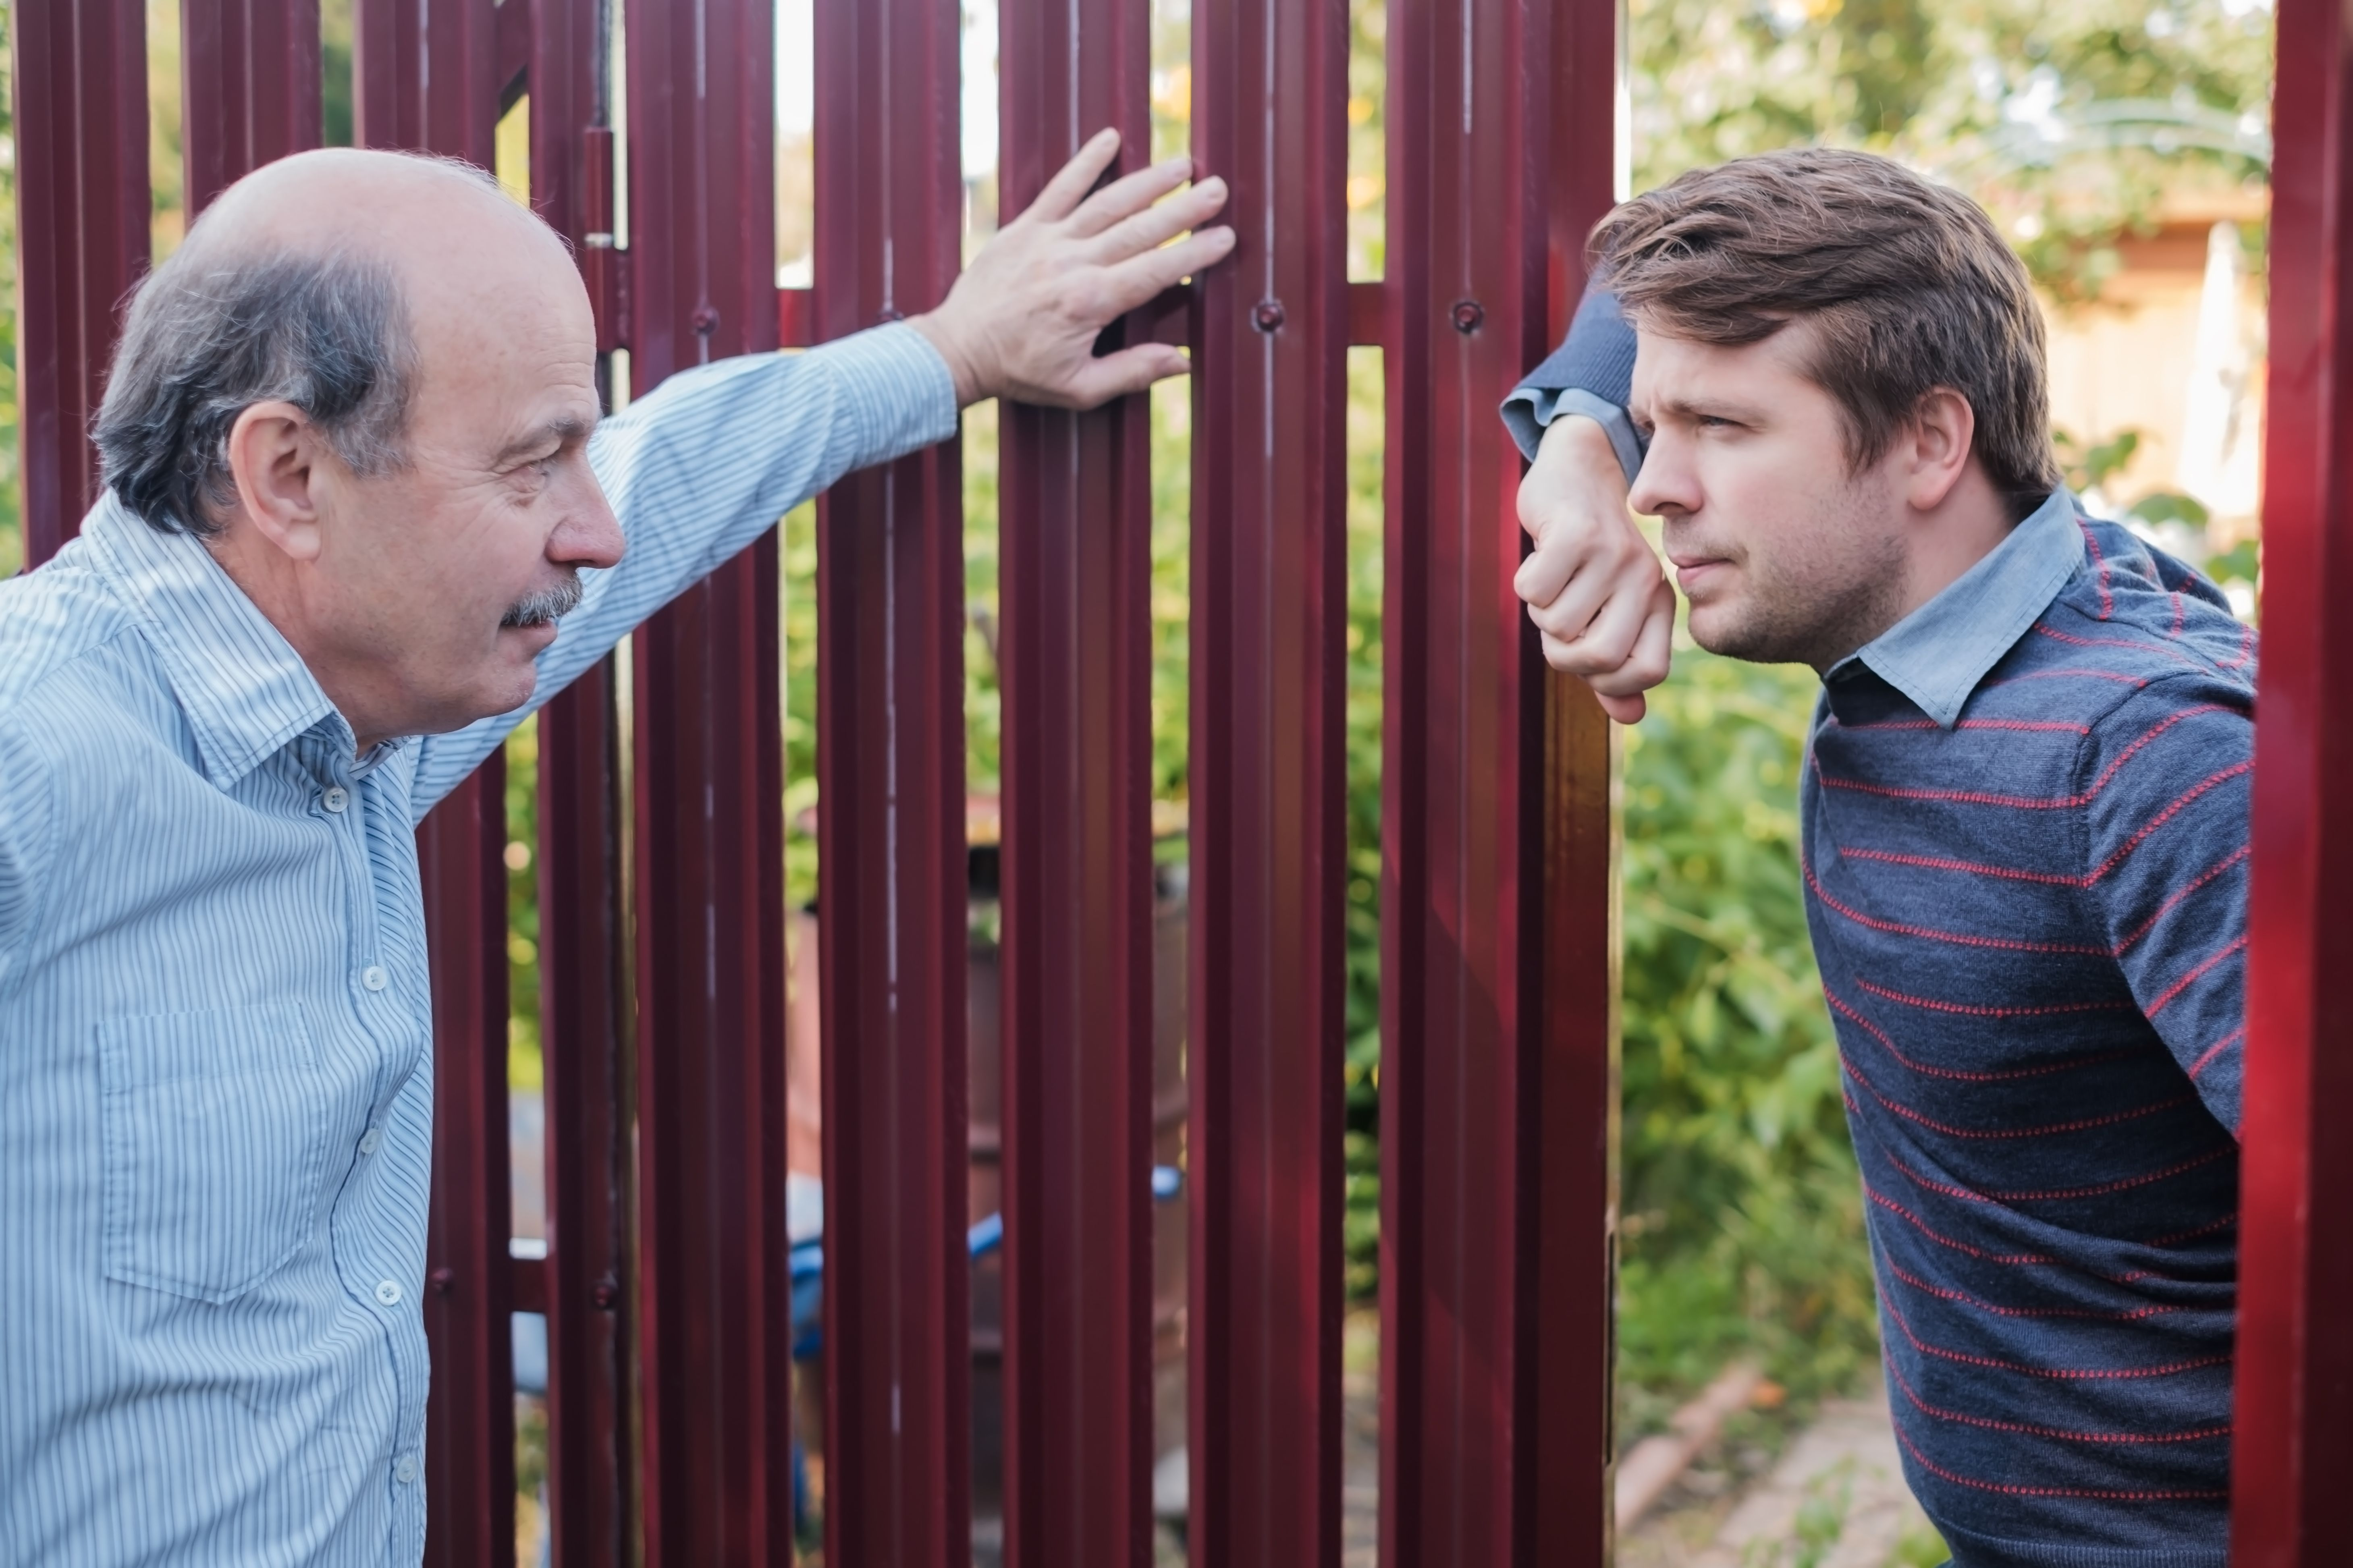 A father and son looking at each other in the yard.   Source: Shutterstock